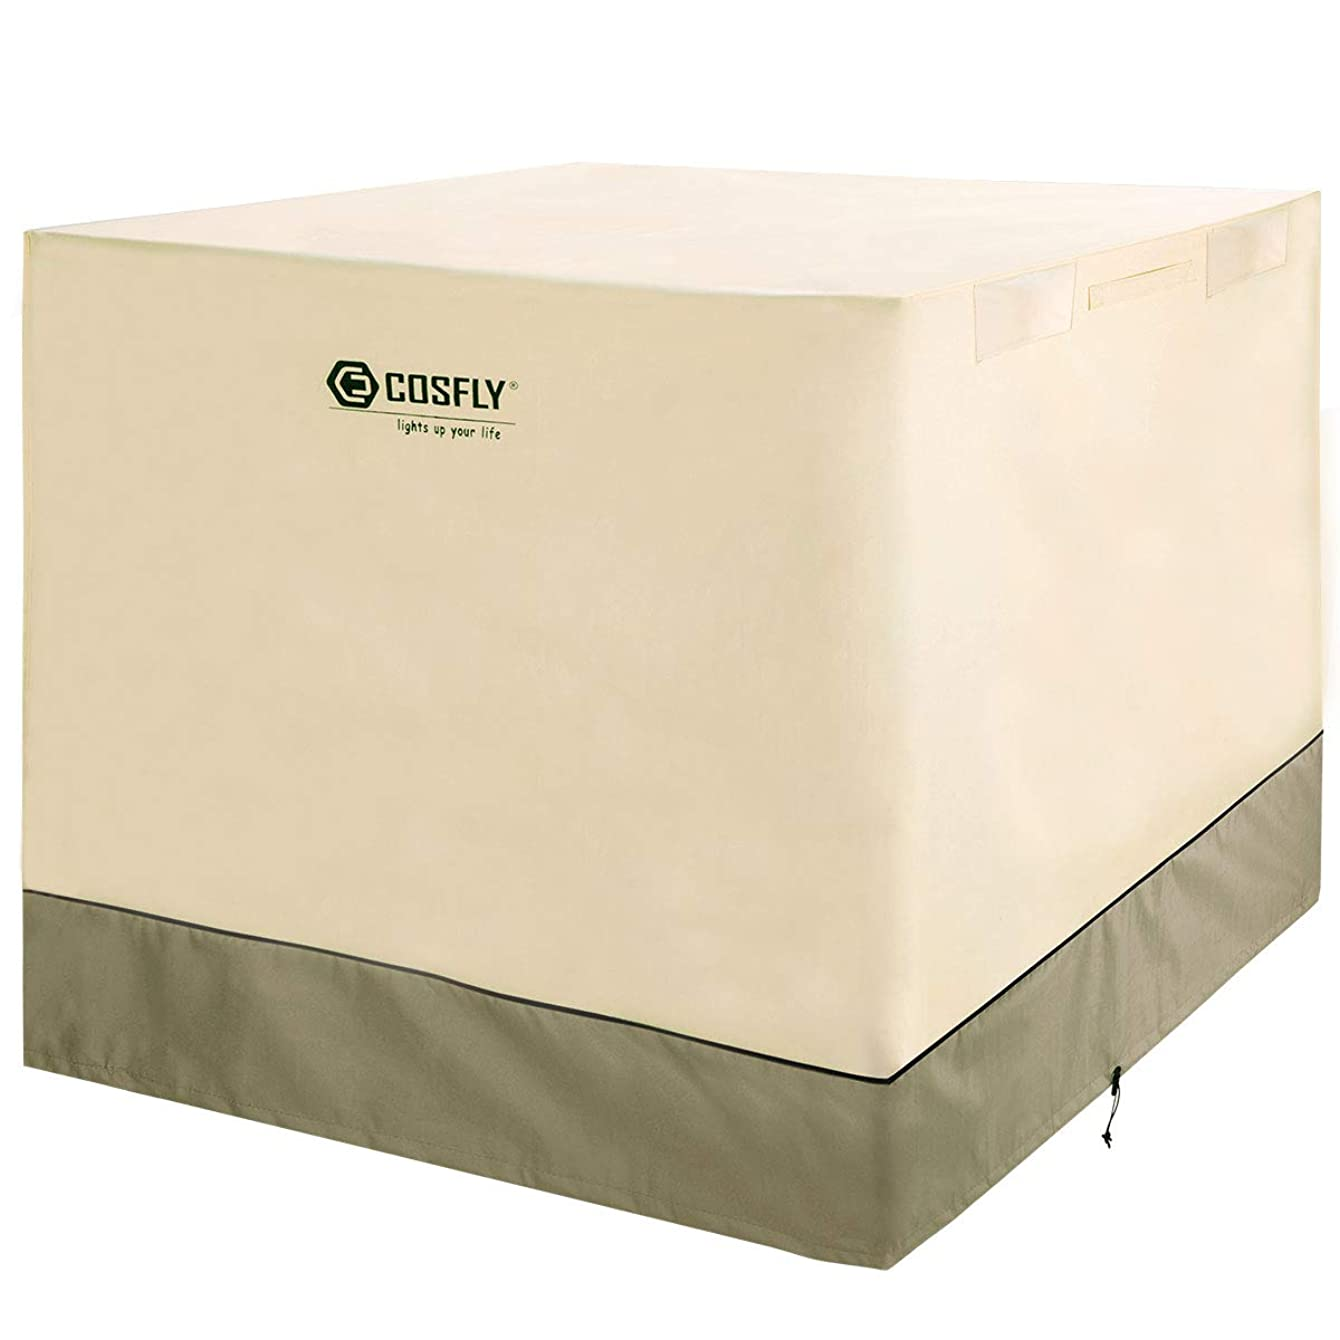 COSFLY Air Conditioner Cover for Outside Units-Durable AC Cover Water Resistant Fabric Windproof Design -Square Fits up to 32 x 32 x 36 inches …